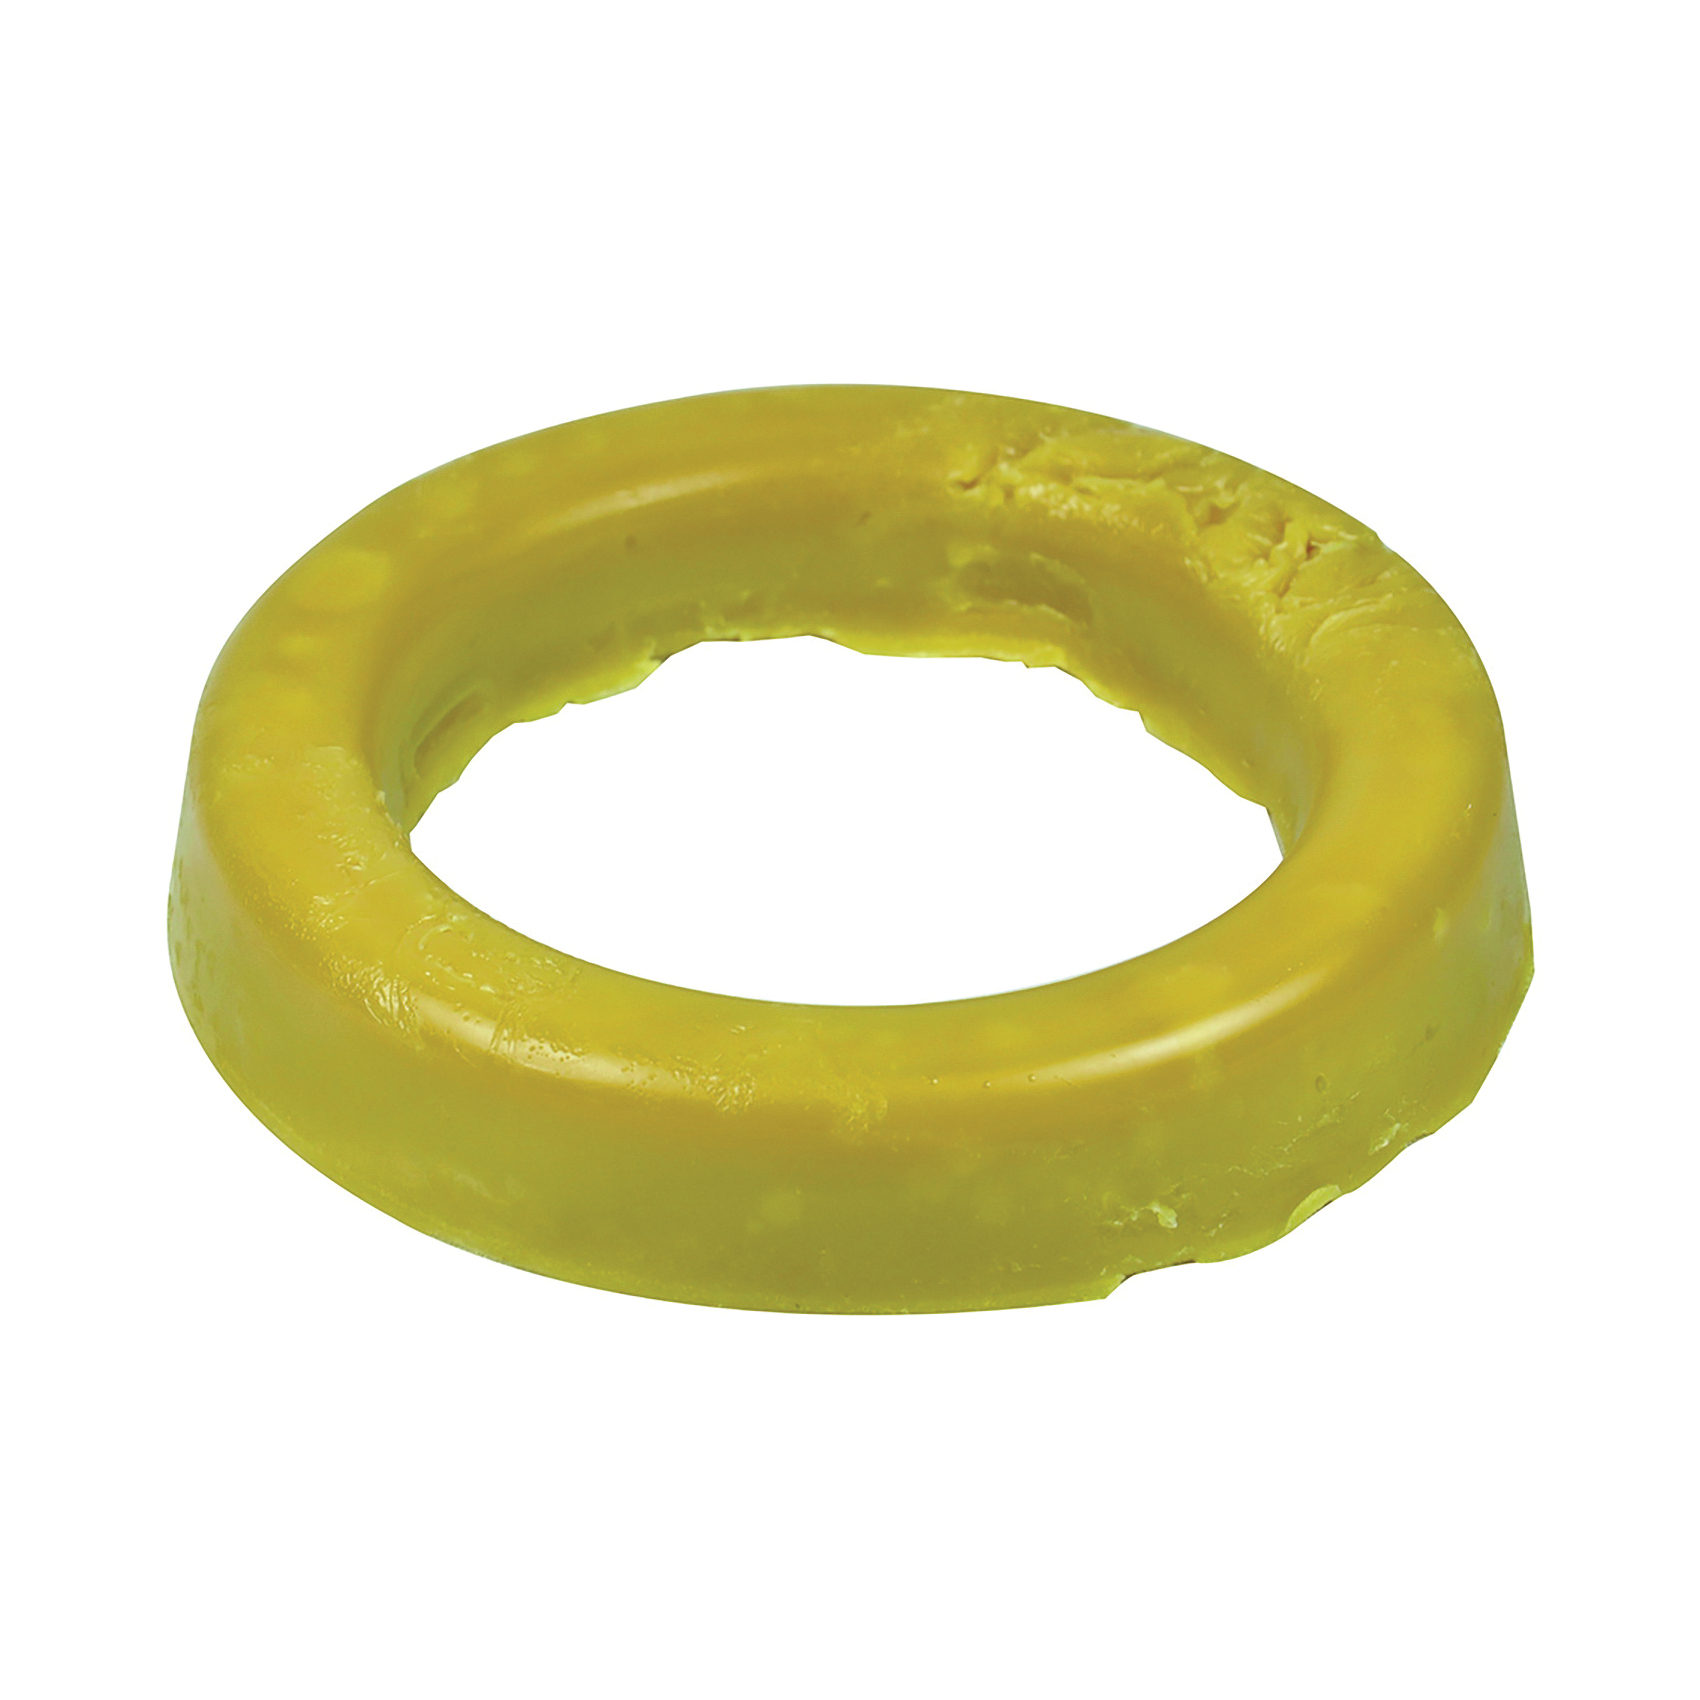 Picture of Danco 40618 Closet Wax Ring Bowl, For: 3 in and 4 in Openings